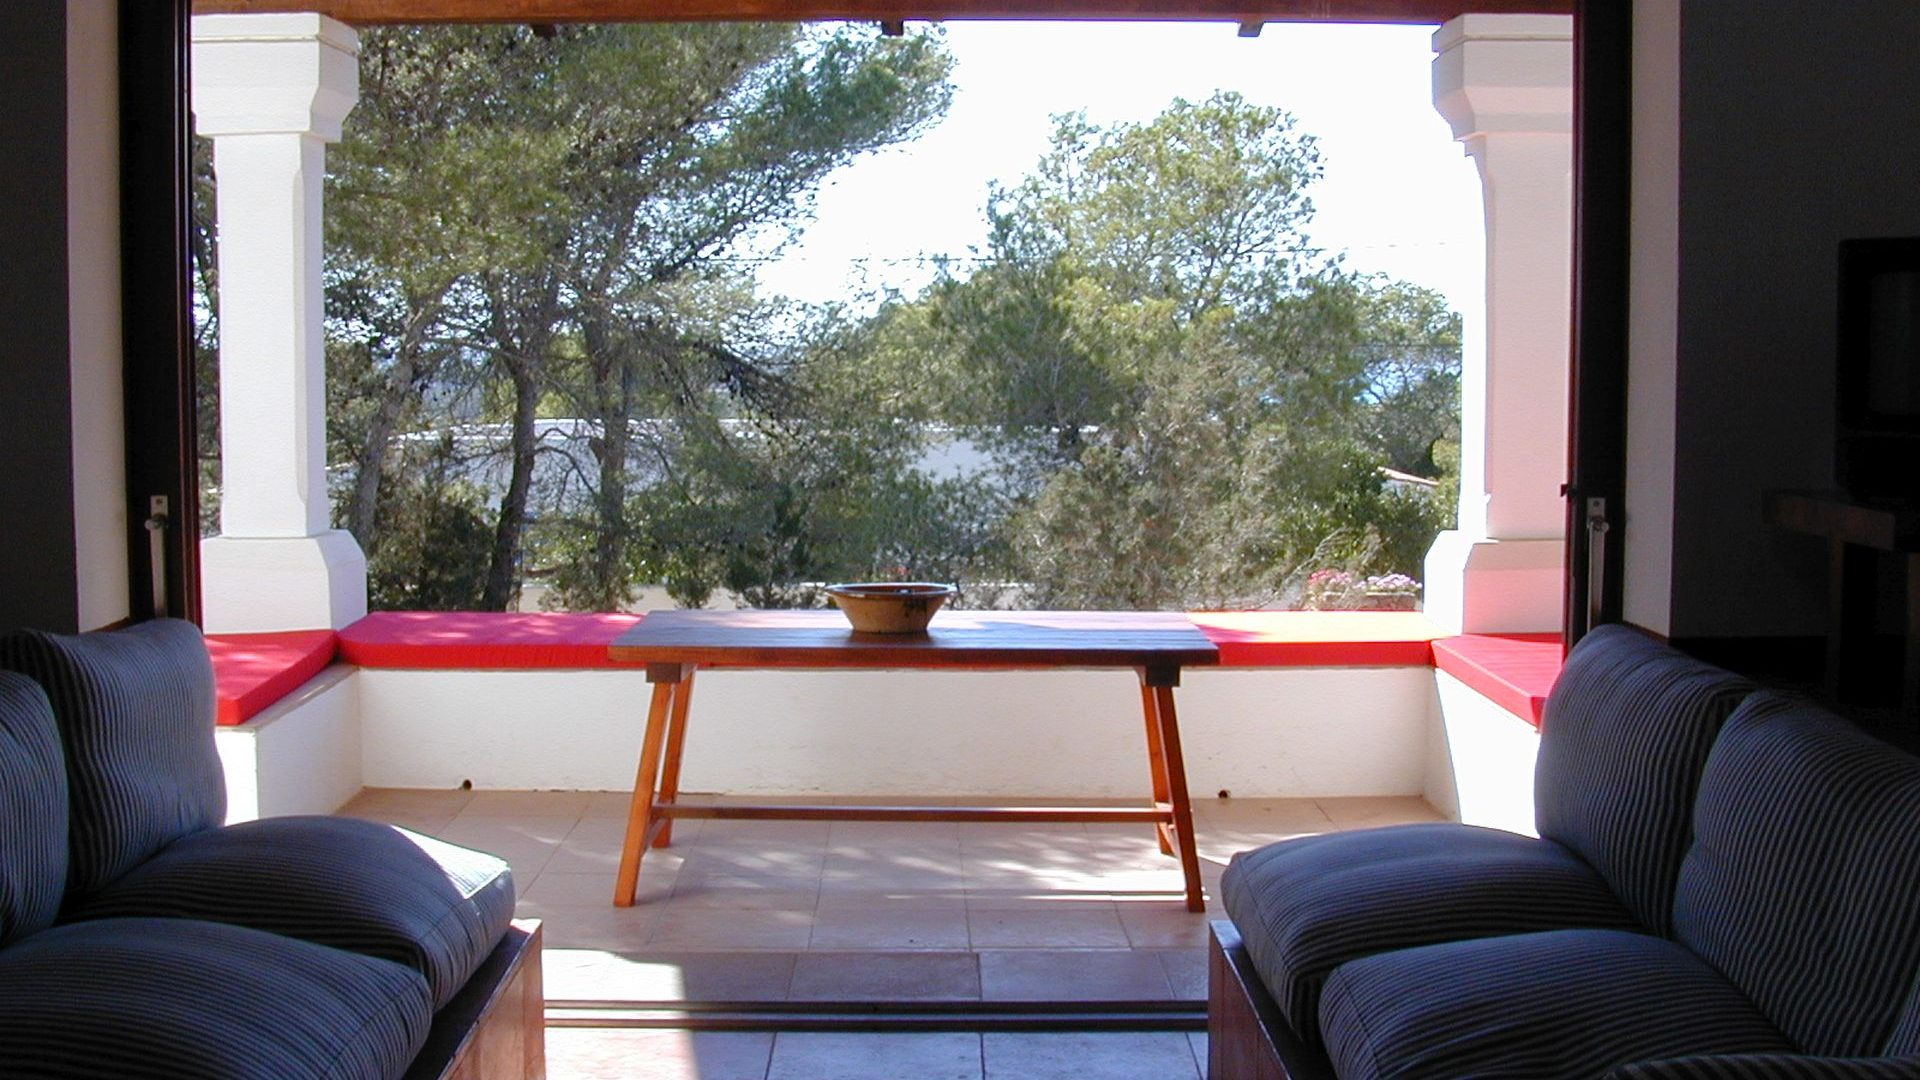 4 bedroom Villa for rent in Formentera